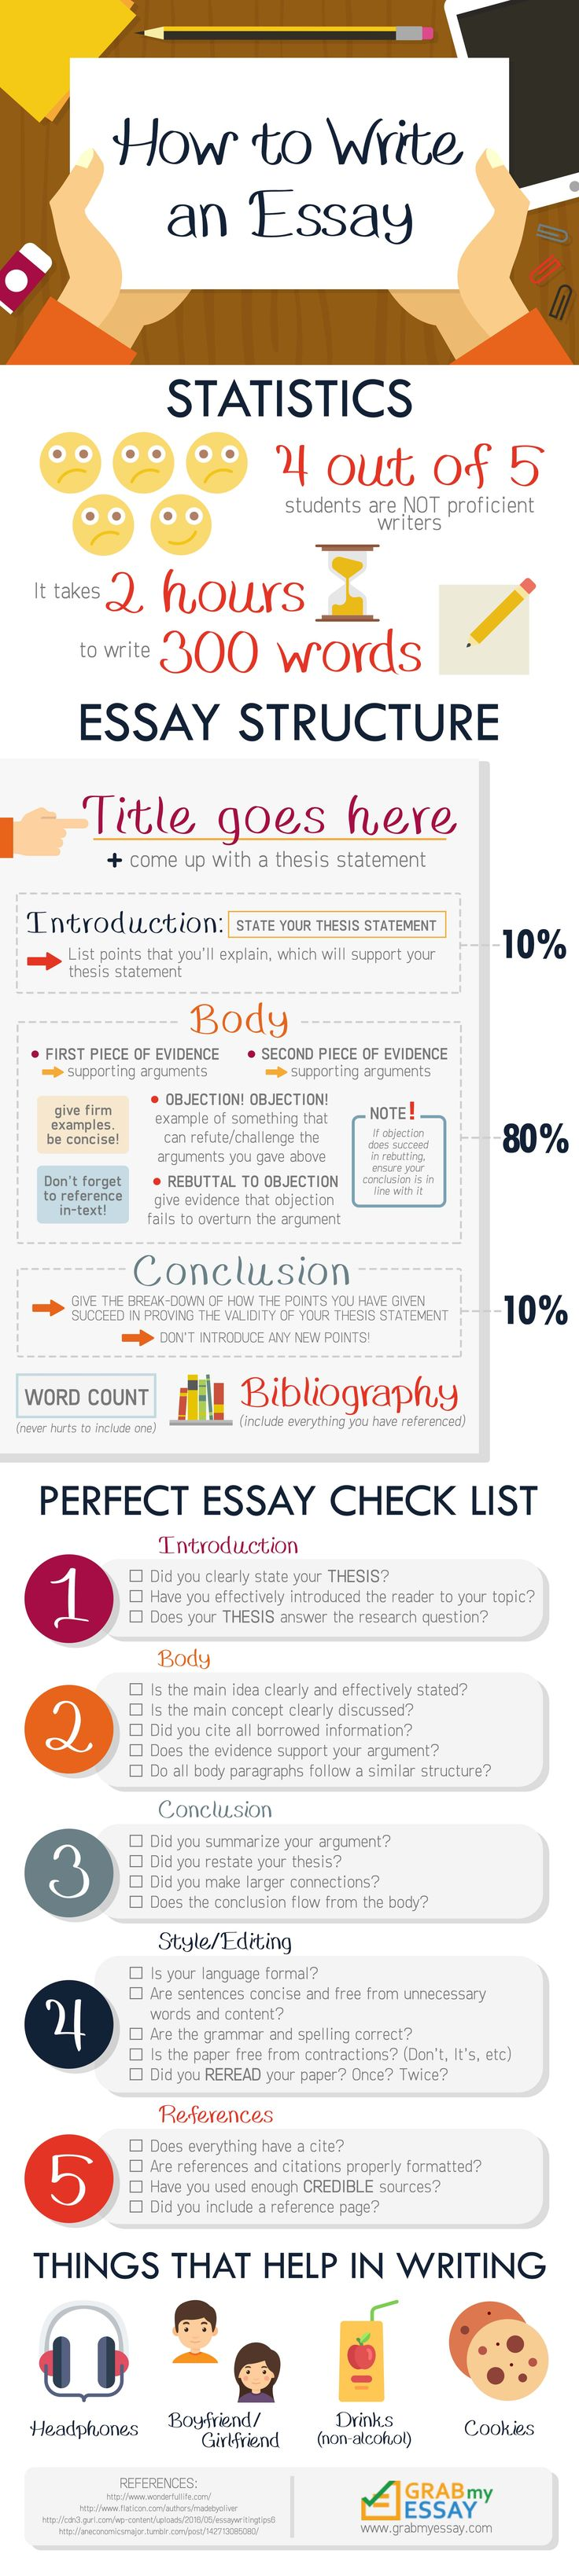 best infographics education images how to write an essay infographic education essay